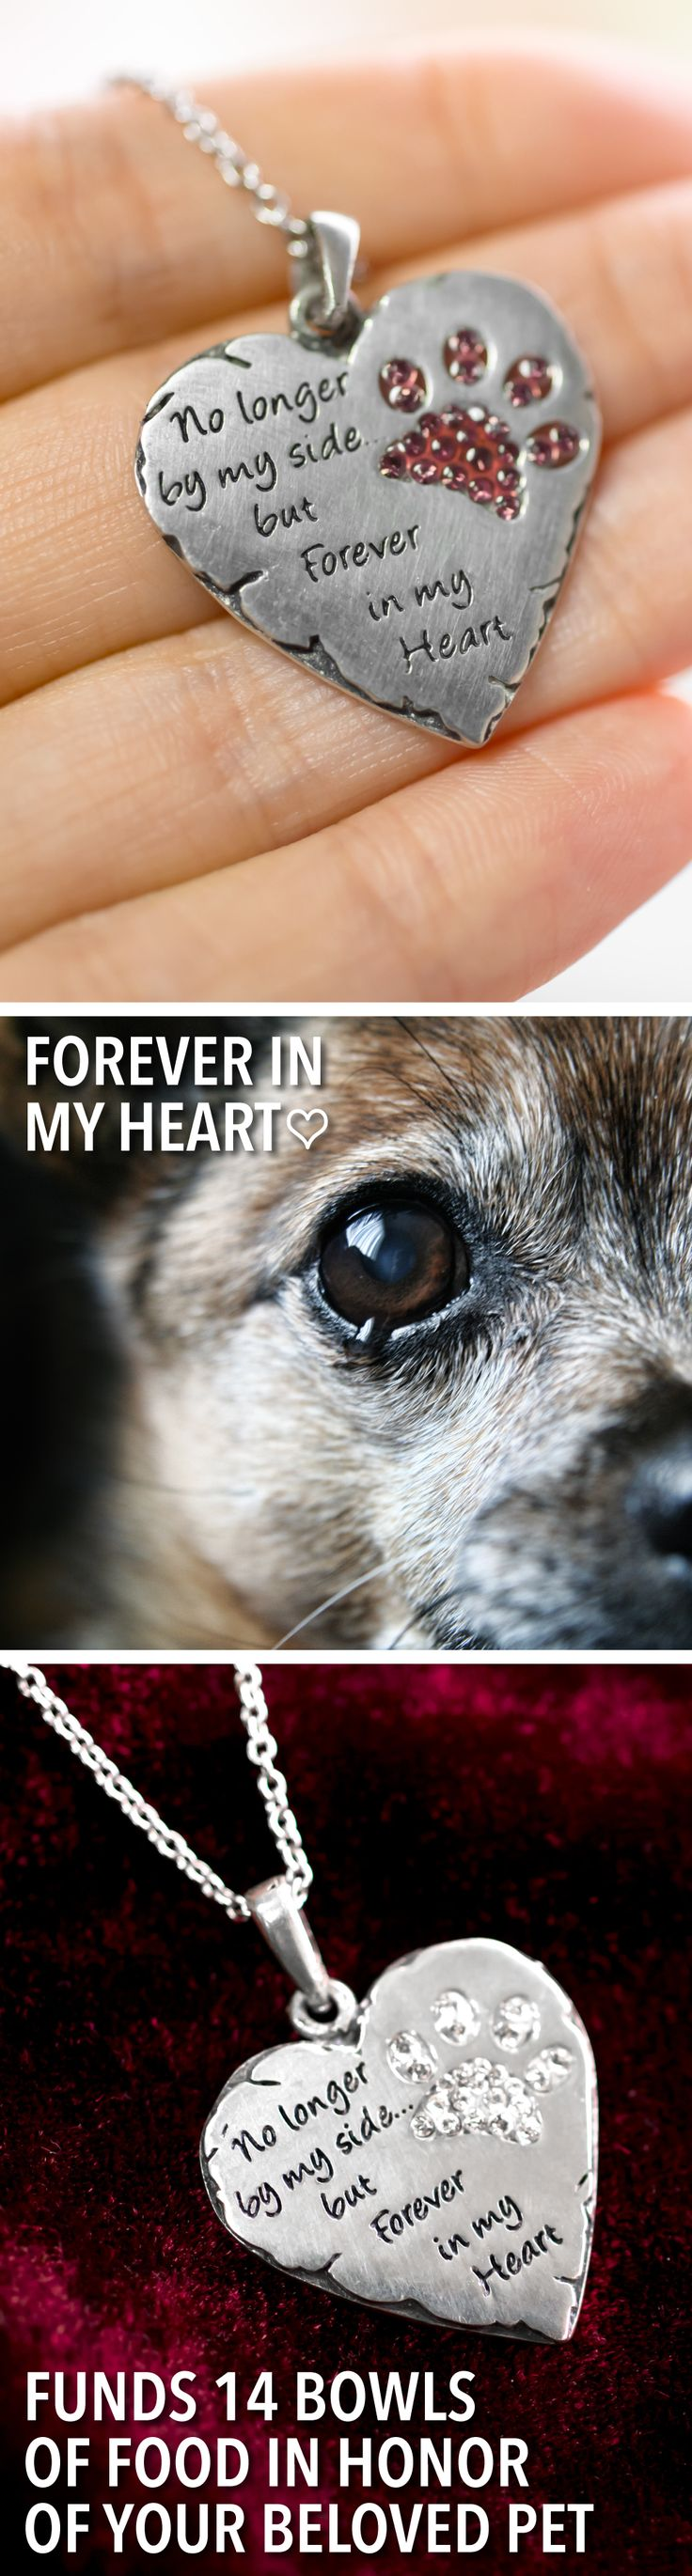 best My Beloved Ginger images on Pinterest Kinky Chihuahua and